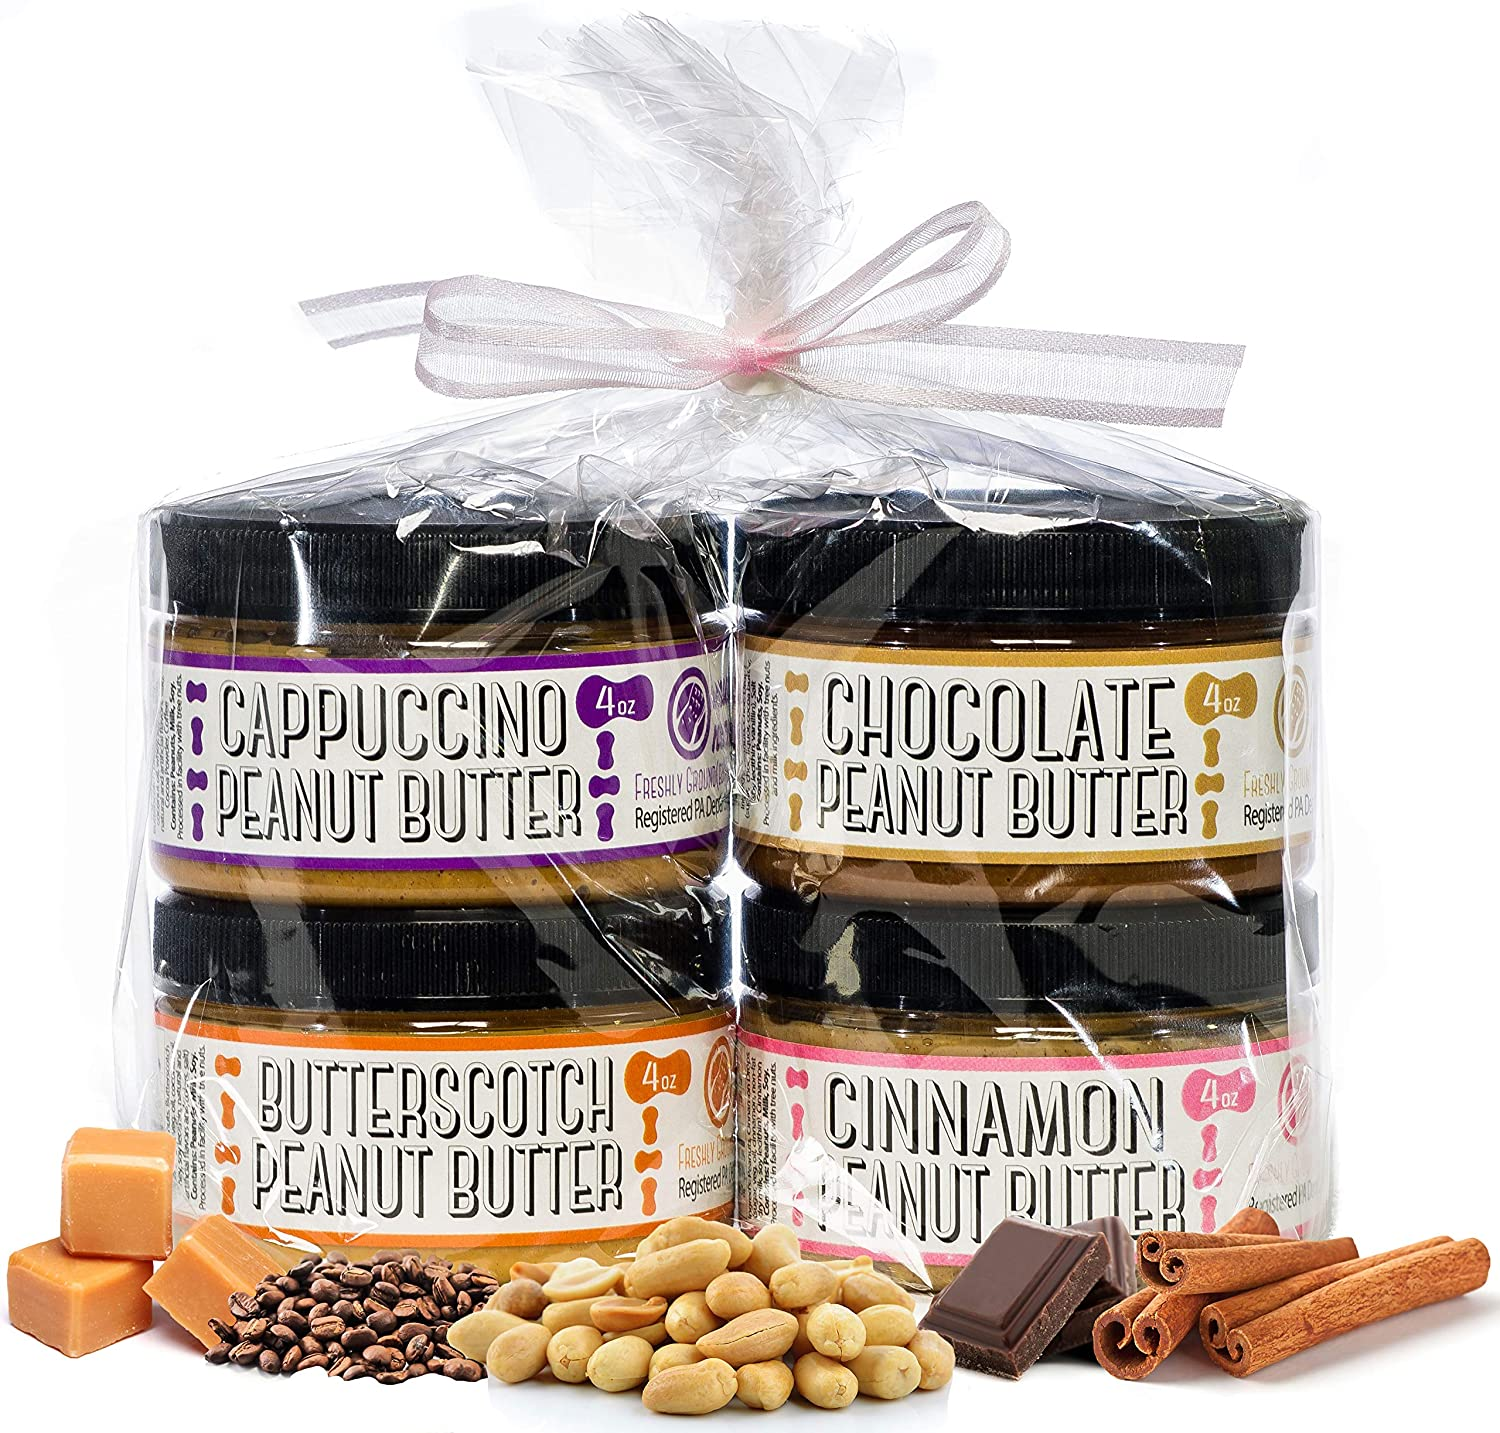 Nutty Novelties Sweet Sampler Peanut Butter Gift Pack - Cappuccino, Butterscotch, Cinnamon & Chocolate Peanut Butter - Healthy Peanut Butter - Crunchy Peanut Butter - 4 Ounces, Pack of 4